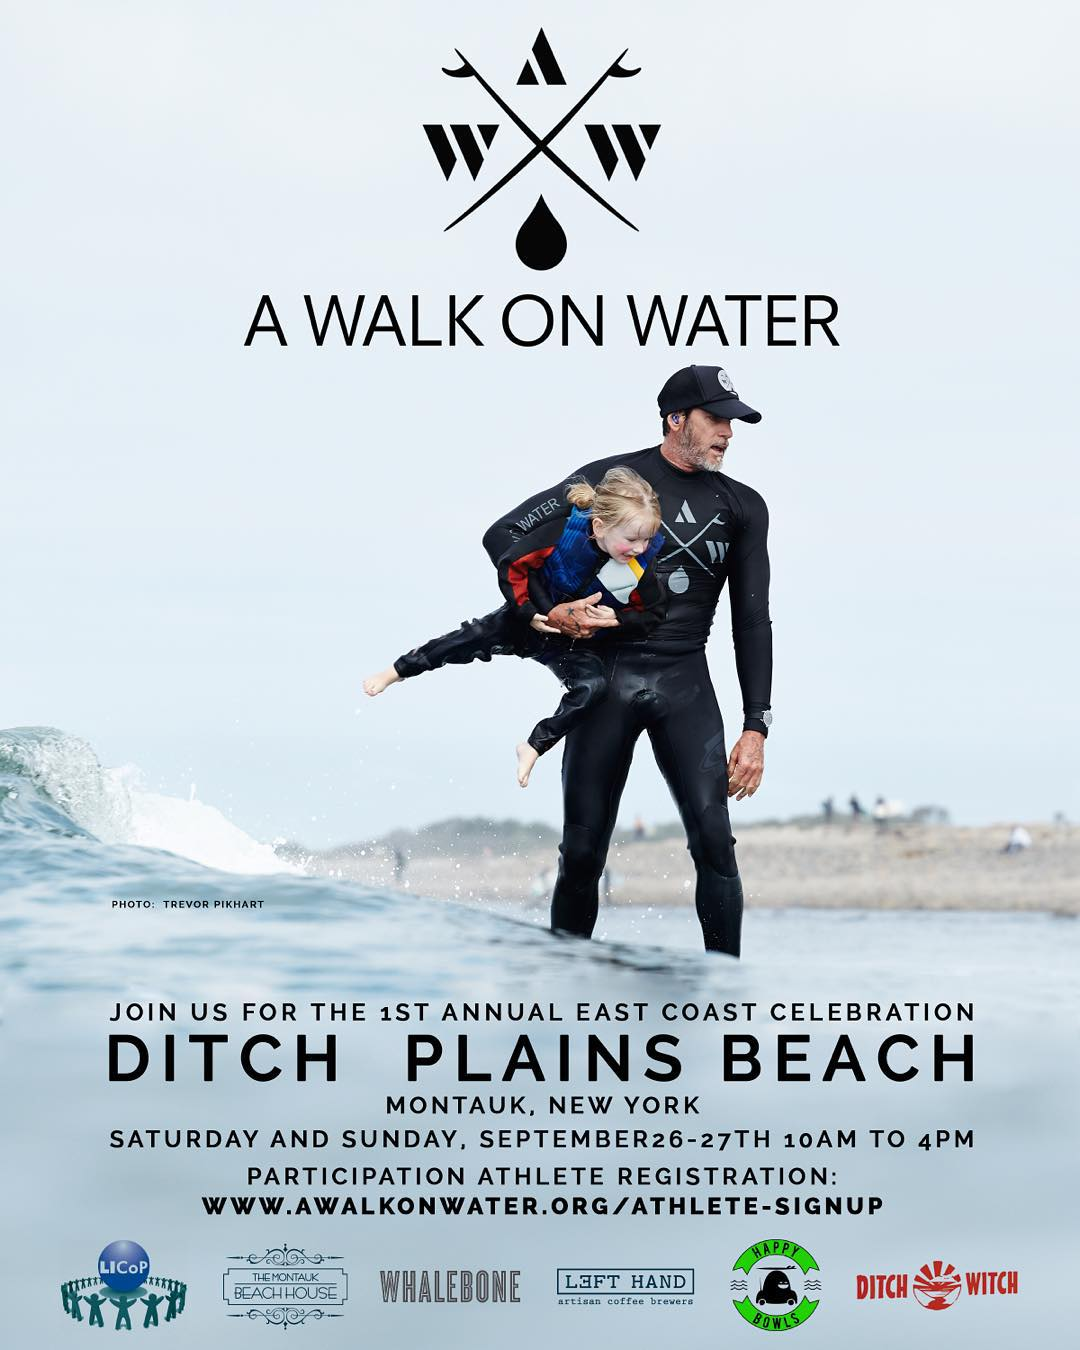 Honored to be playing a (small) part of a very special weekend in Montauk with surf therapy program @awalkonwater. Looking forward to tomorrow like it's Christmas Eve. See you there @thembh @happybowls @ditch_witch_mtk @lefthandcoffee...